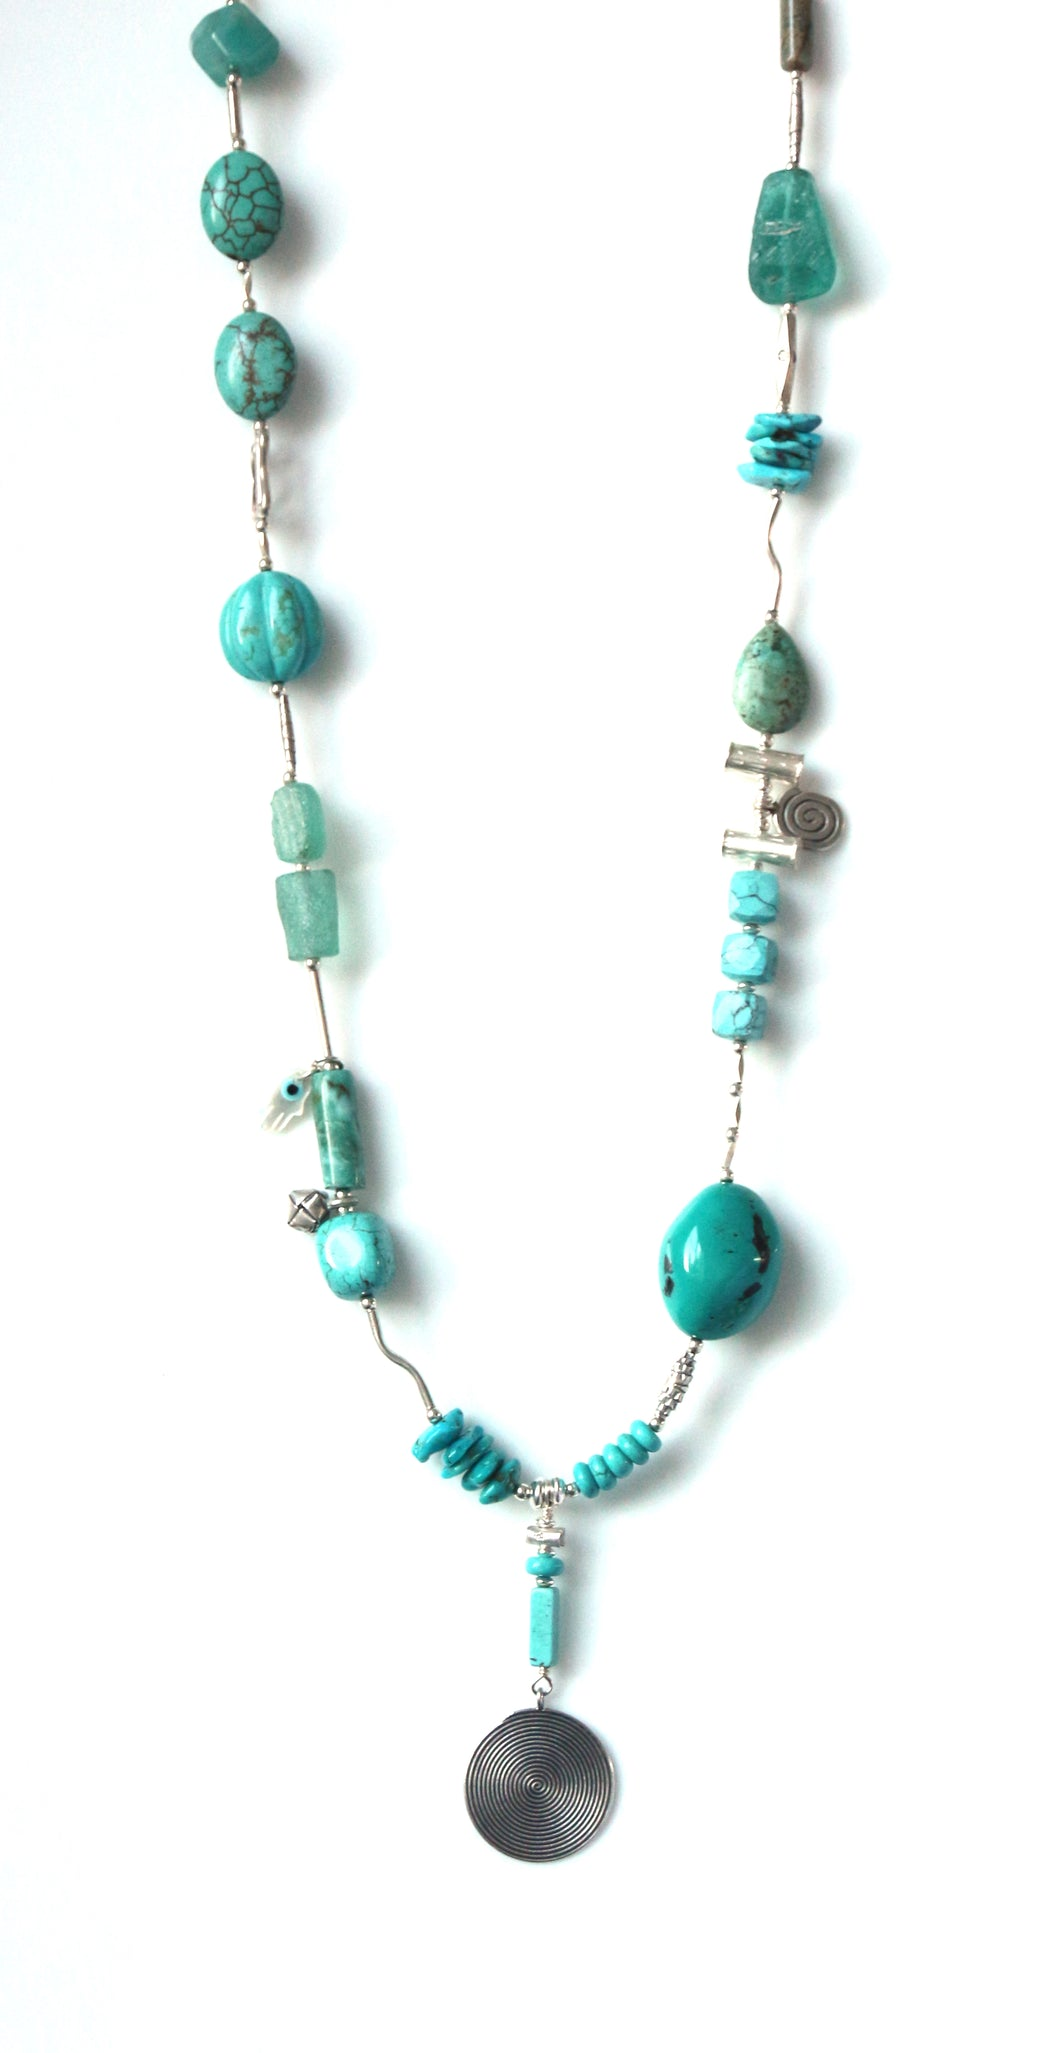 Australian Handmade Necklace with Turquoise Howlite Jasper and Roman Glass